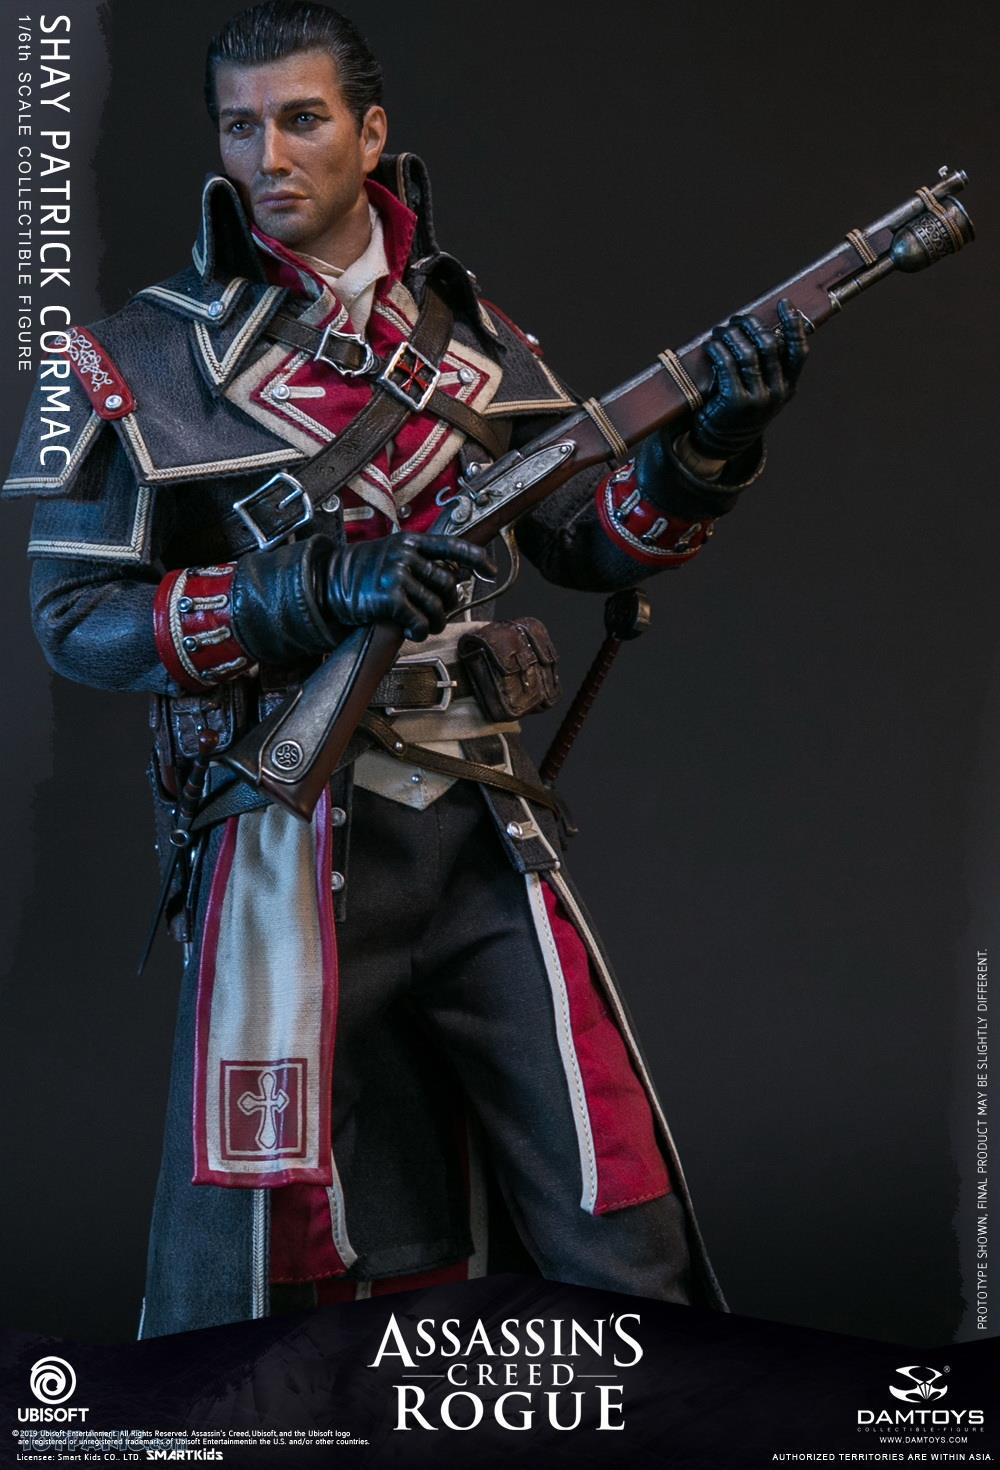 male - NEW PRODUCT: DAMTOYS: Assassins Creed Rogue - 1/6th scale Shay Patrick Cormac Collectible Figure 82220122